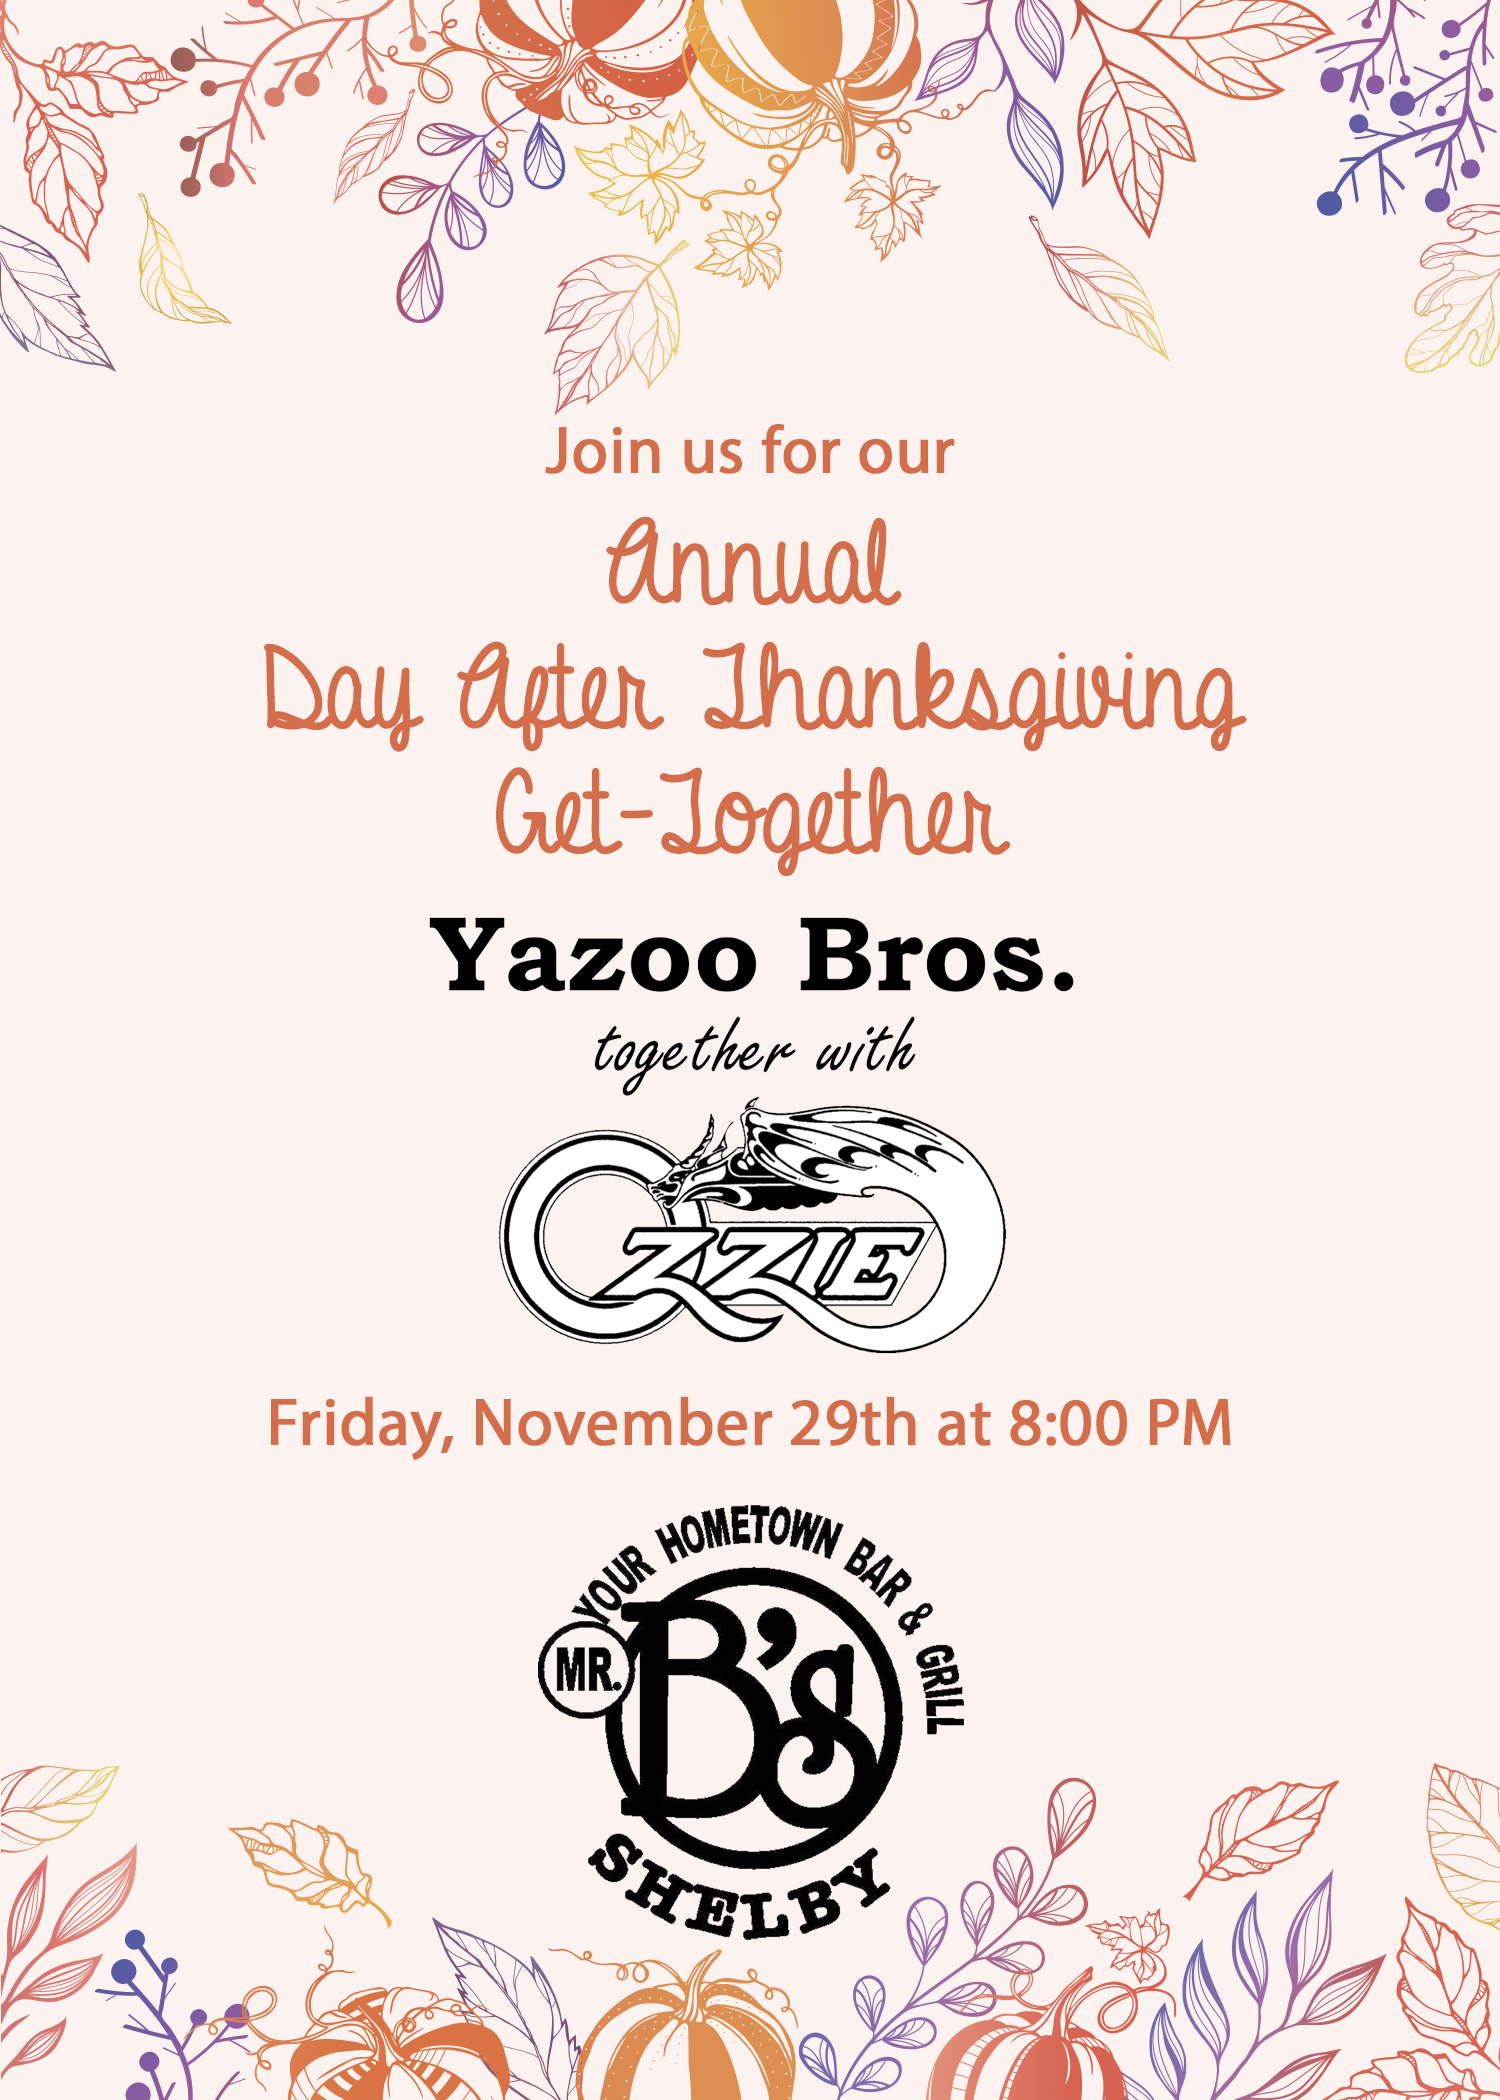 Yazoo Bros together with Ozzie at 8:00 PM on Friday, November 29th, for our Annual day after Thanksgiving get together!